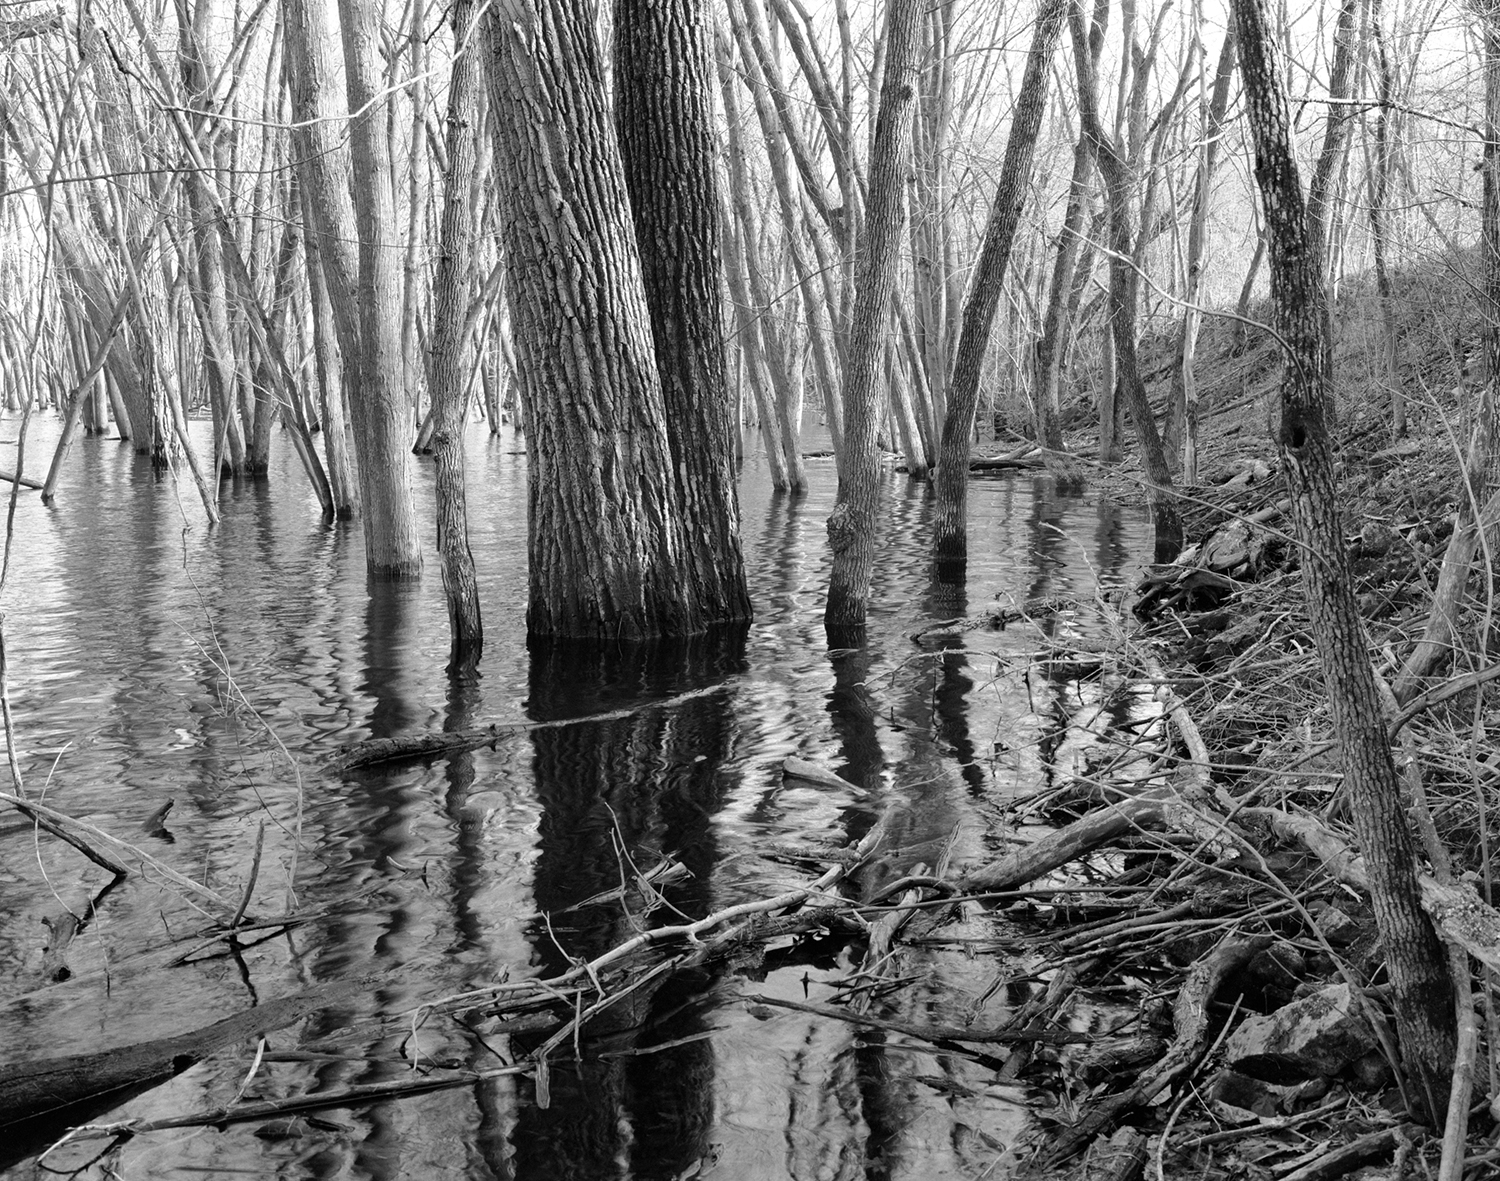 2 Inundated Forest, St Croix River, MN, 2009.jpg